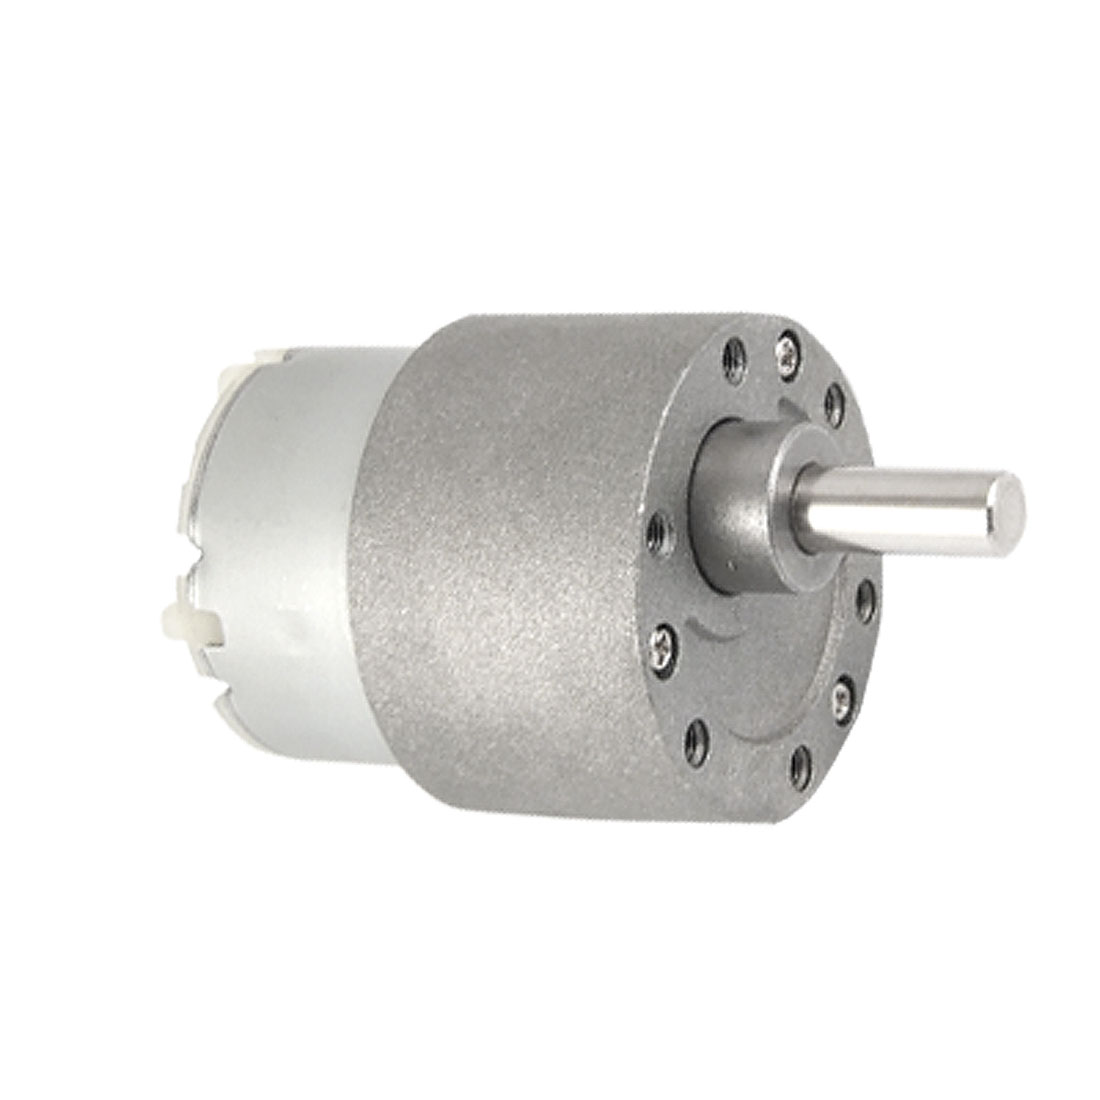 30RPM-37mm-Diameter-DC-6V-0-15A-Speed-Reducing-Geared-Motor